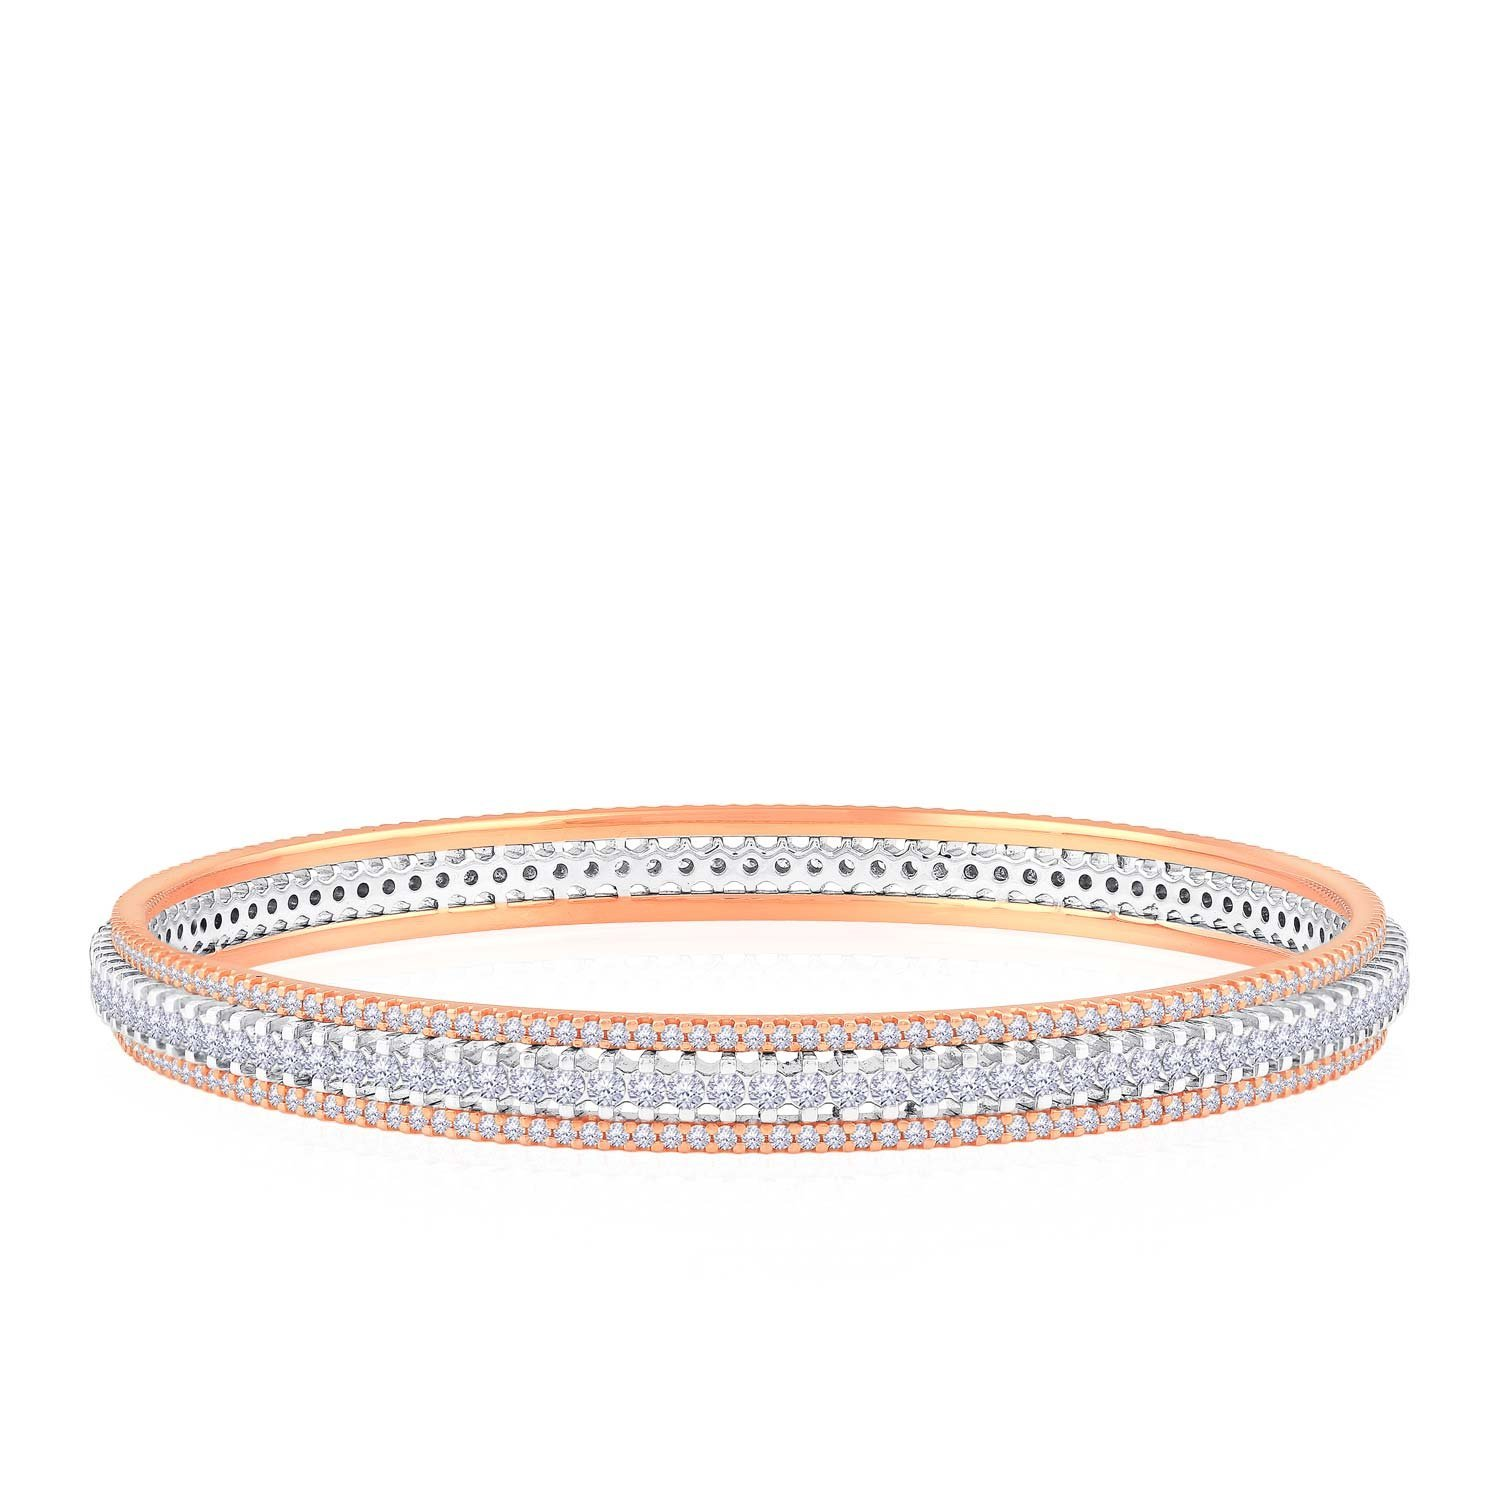 Malabar Gold and Diamonds 18KT Rose Gold and Diamond Bangle for Women